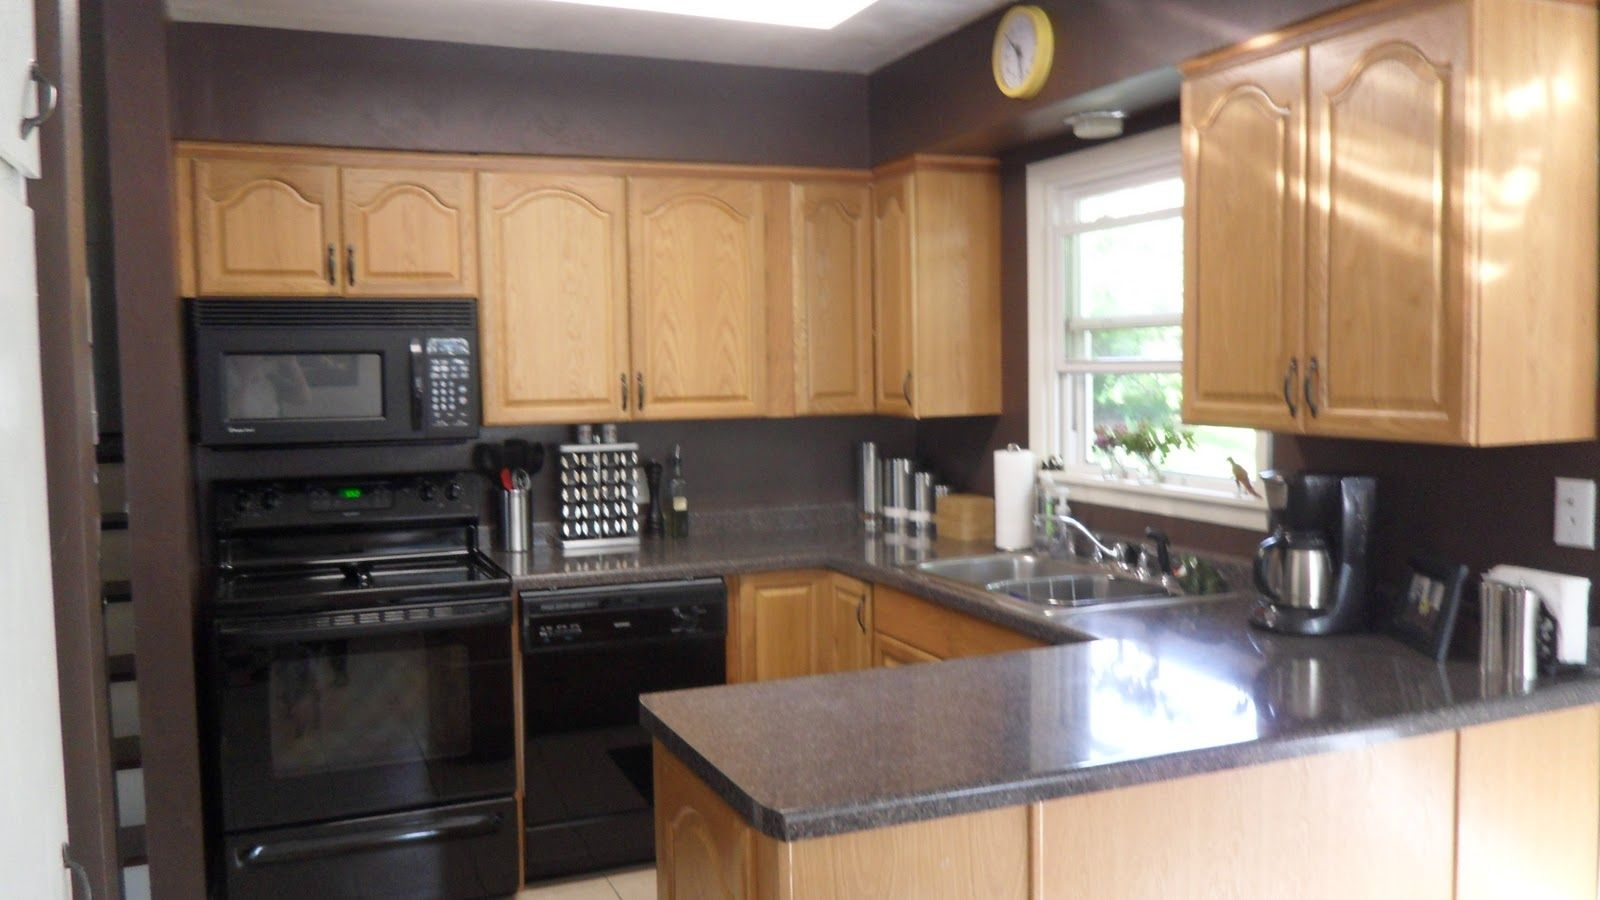 4 Steps To Choose Kitchen Paint Colors With Oak Cabinets Grey